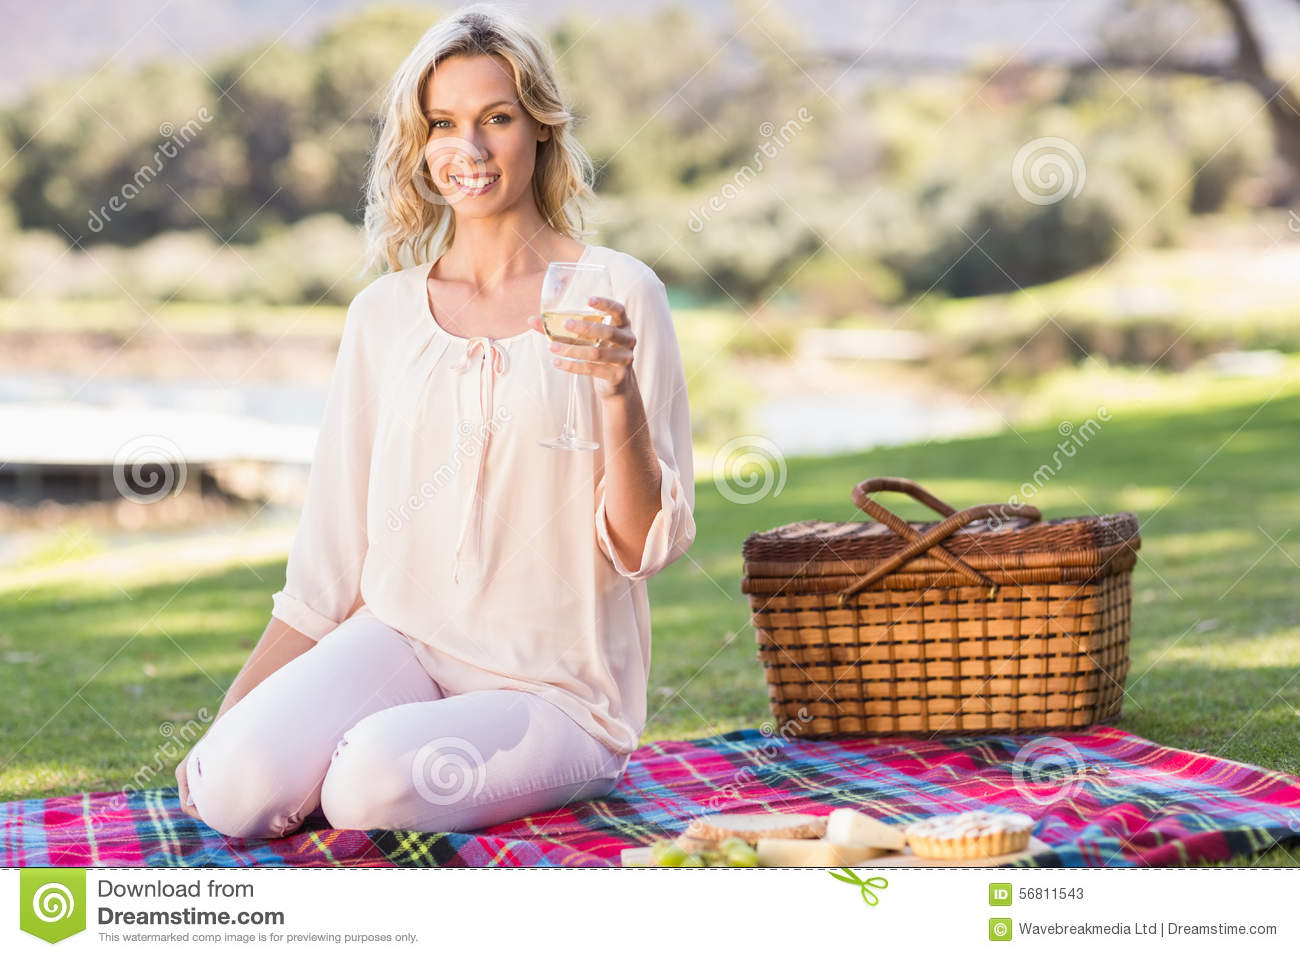 naked woman sitting on a picnic